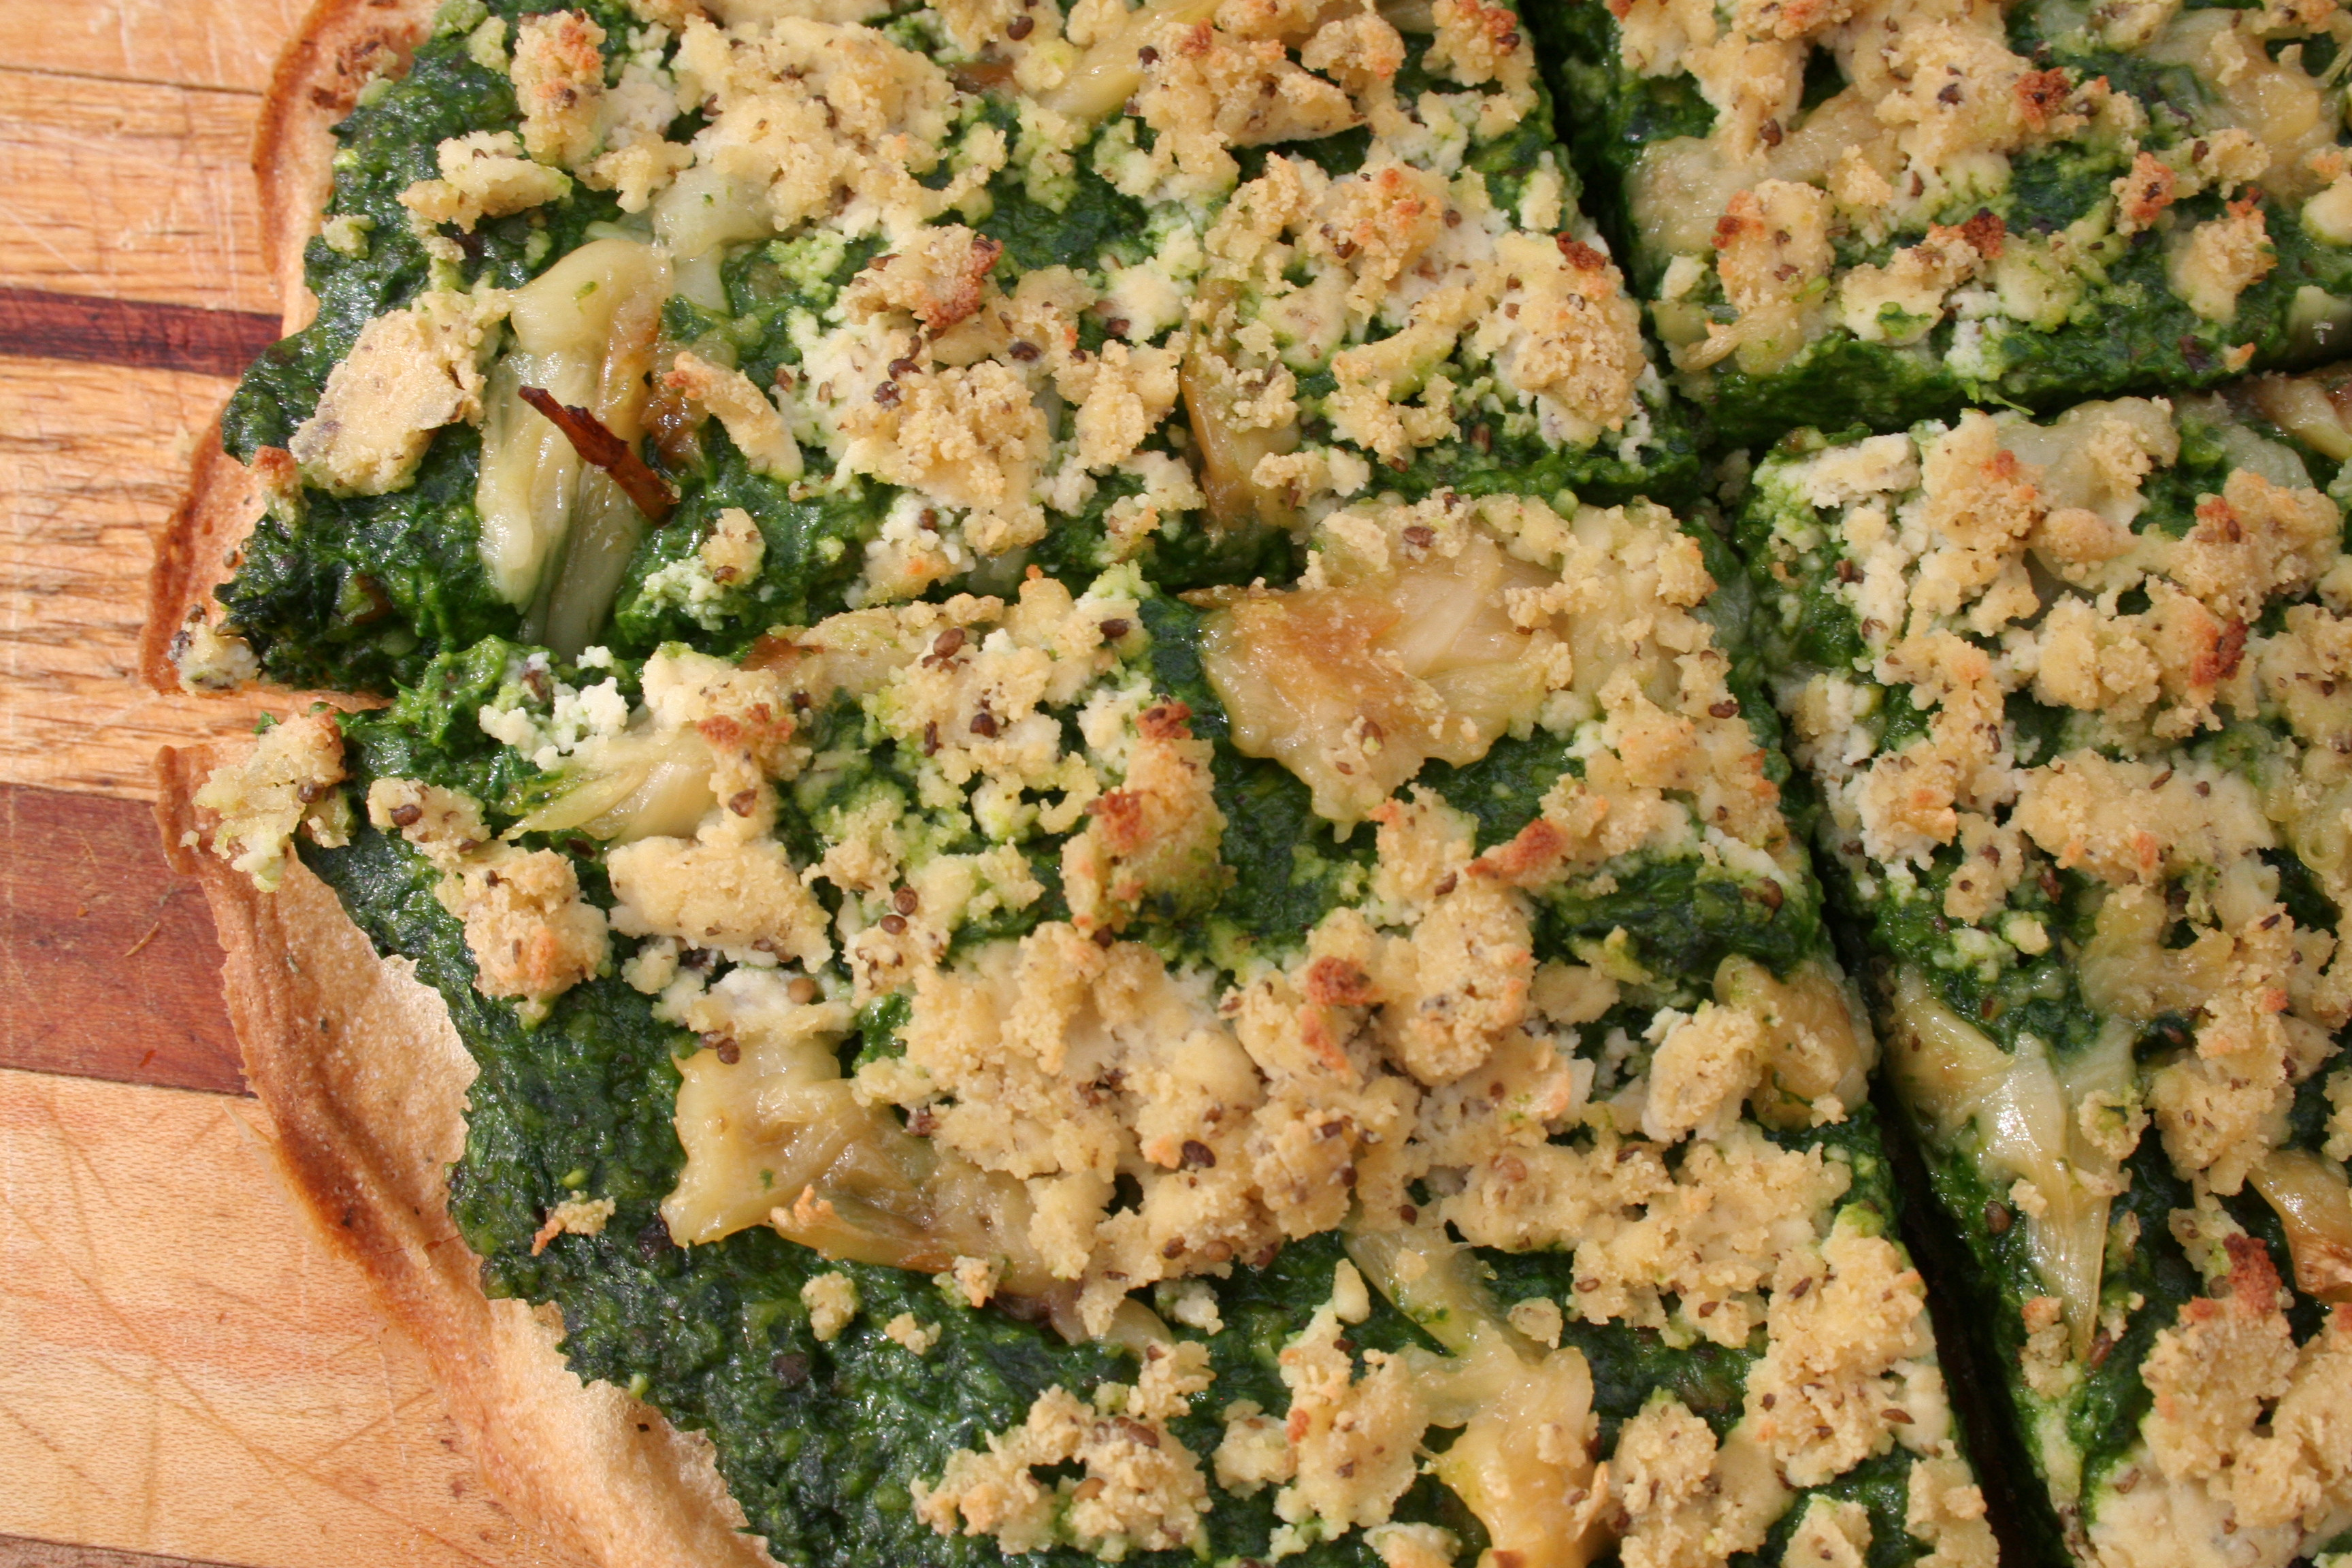 Pizza with Spinach Pesto, roasted garlic and Vegcuisine Soya Bleu Cheese